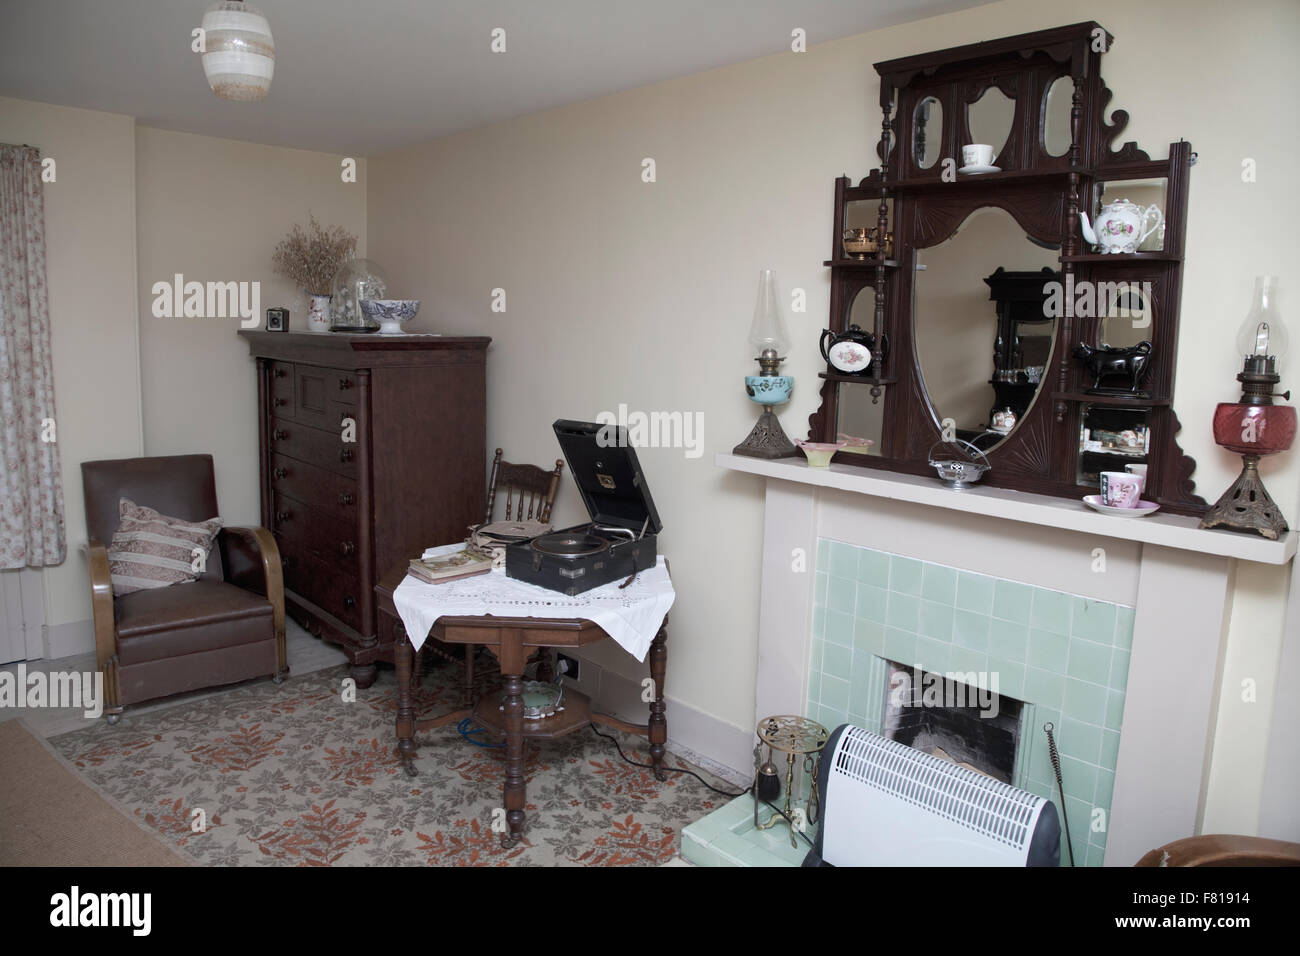 Old Fashioned Living Room British 1950s Style Stock Photo